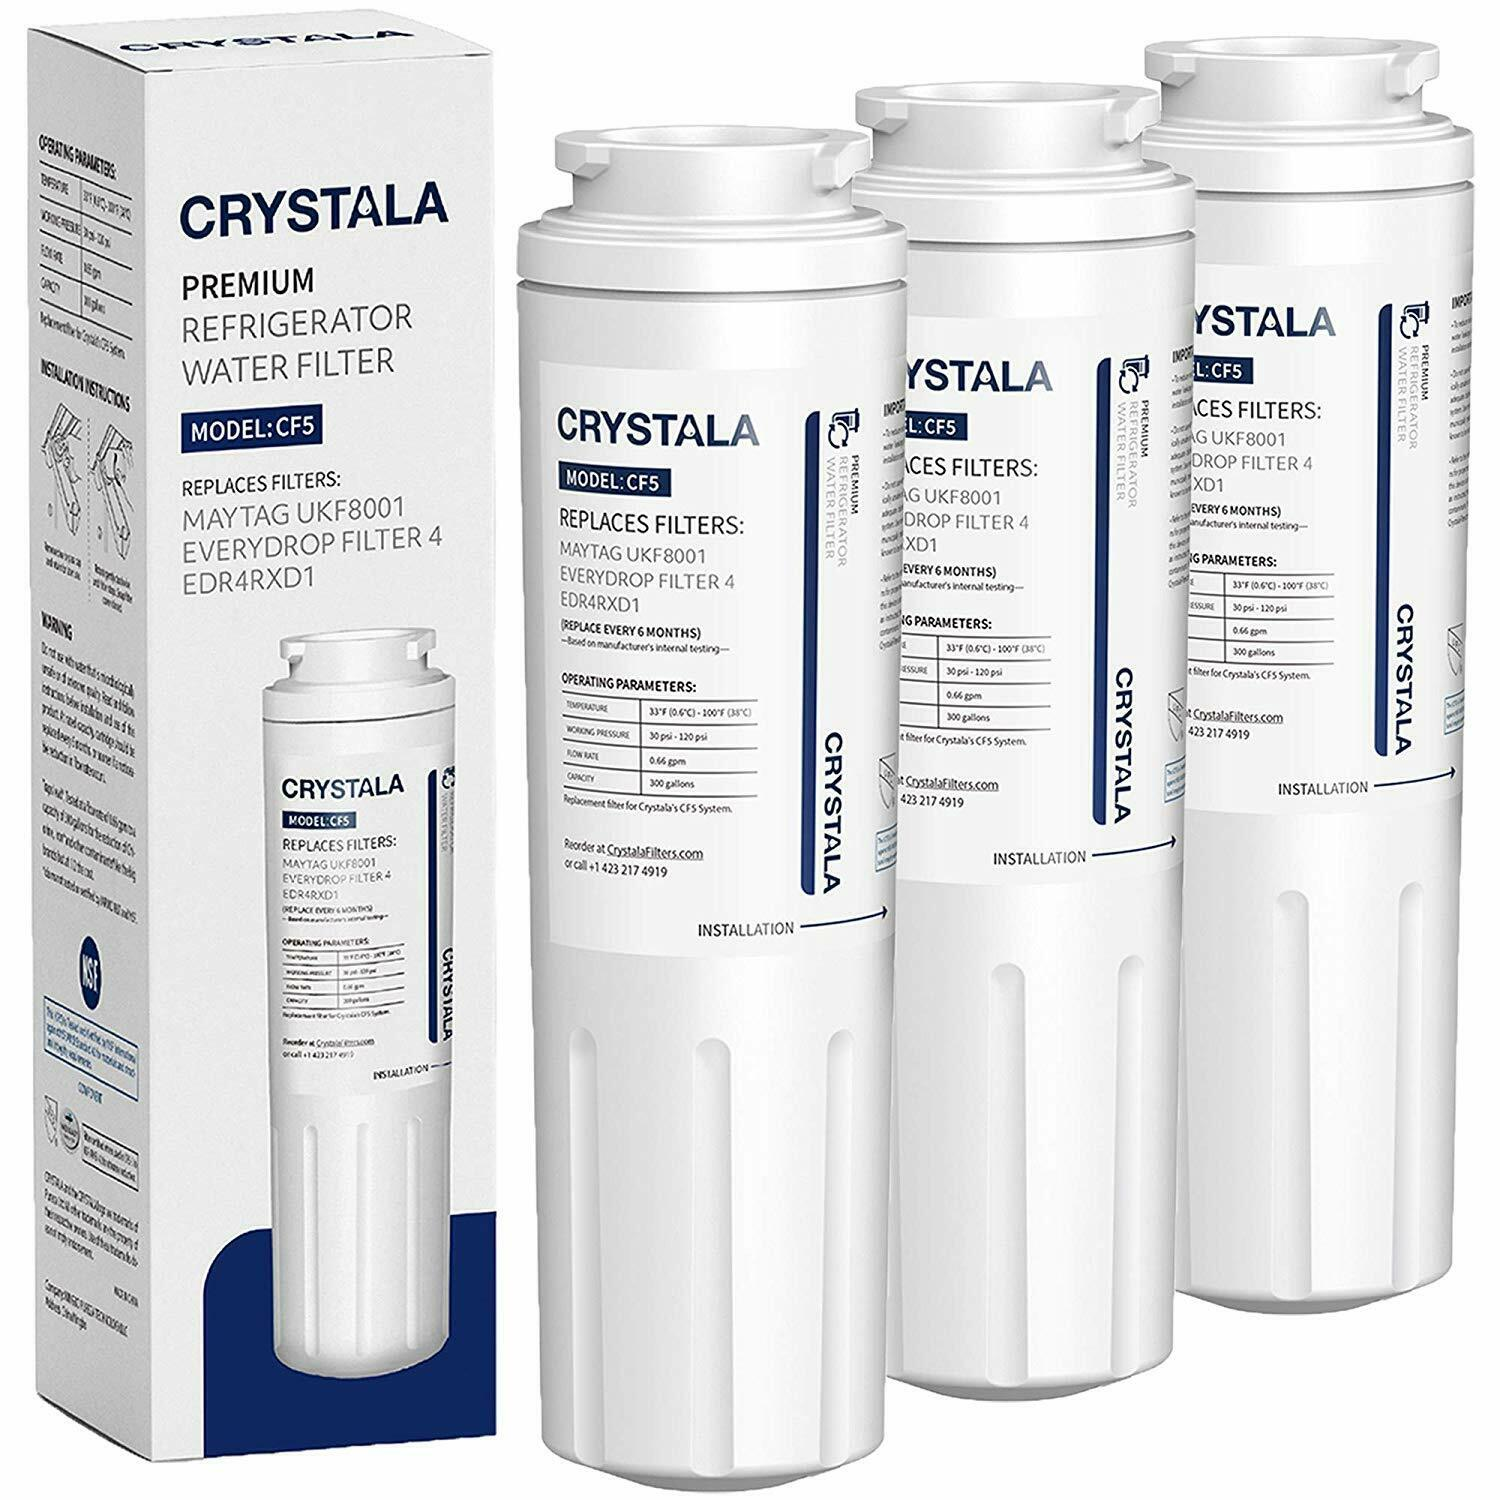 1-3pack Refrigerator water filter Fits Kenmore Pur 9006, 46-